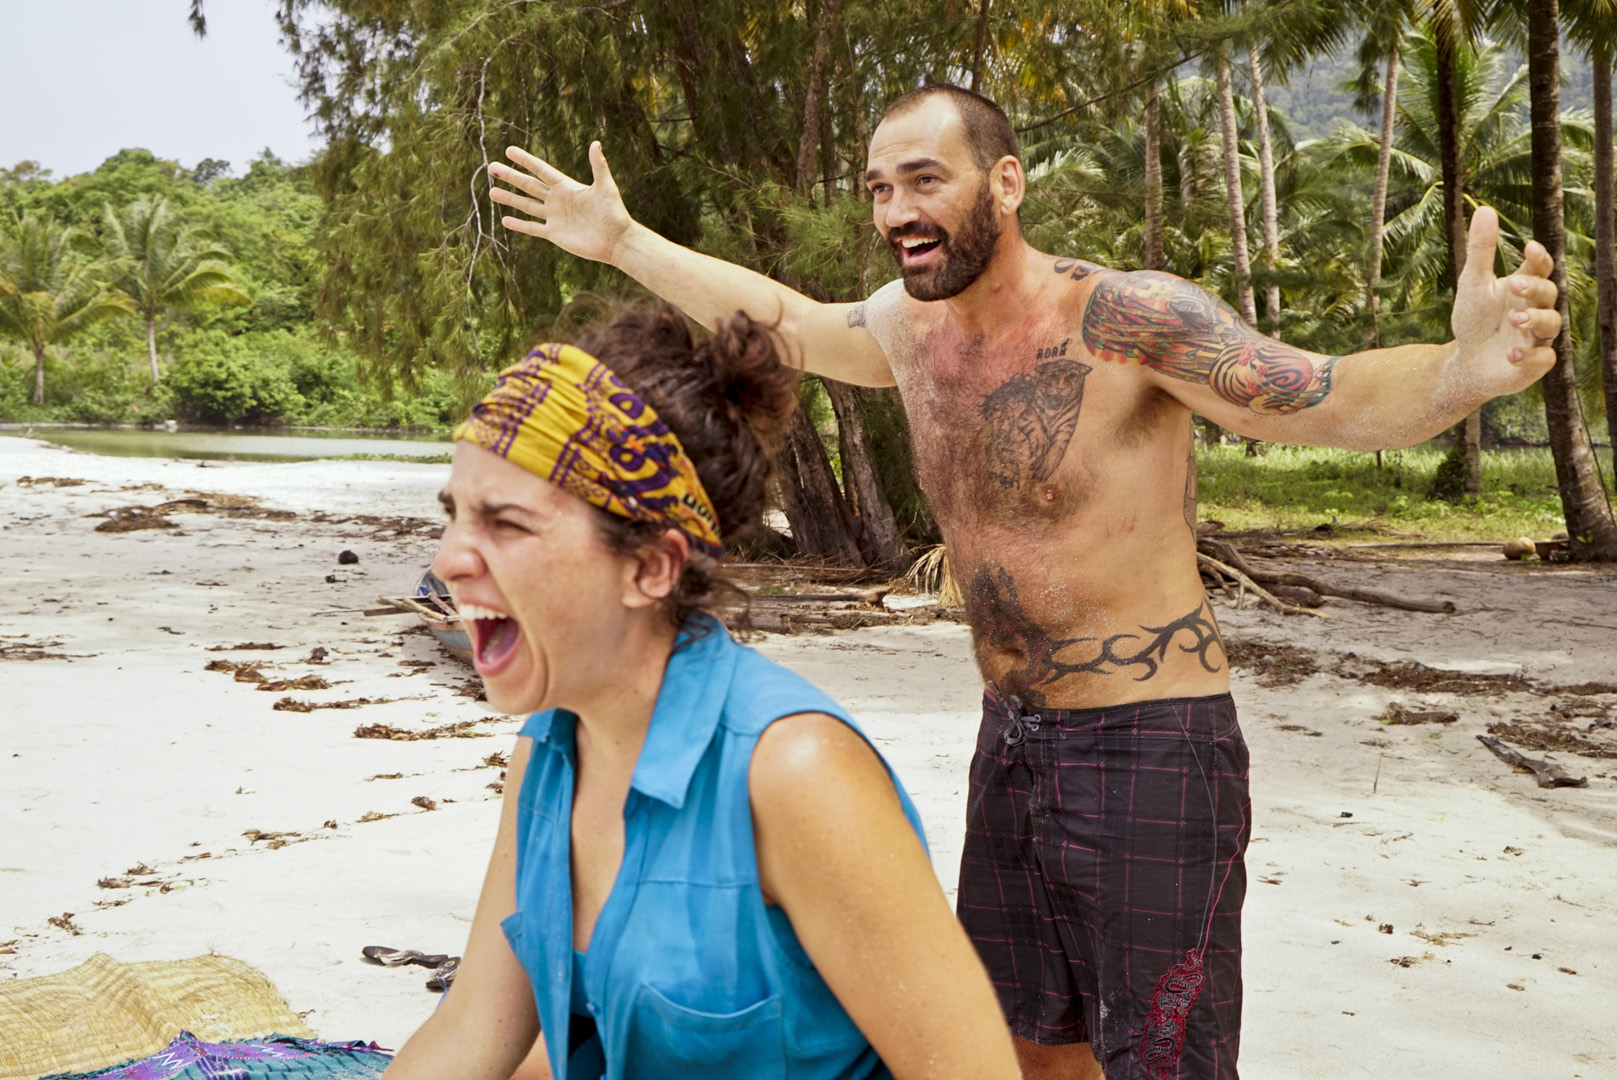 Aubry and Scot are thrilled when they notice a very special surprise heading their way.